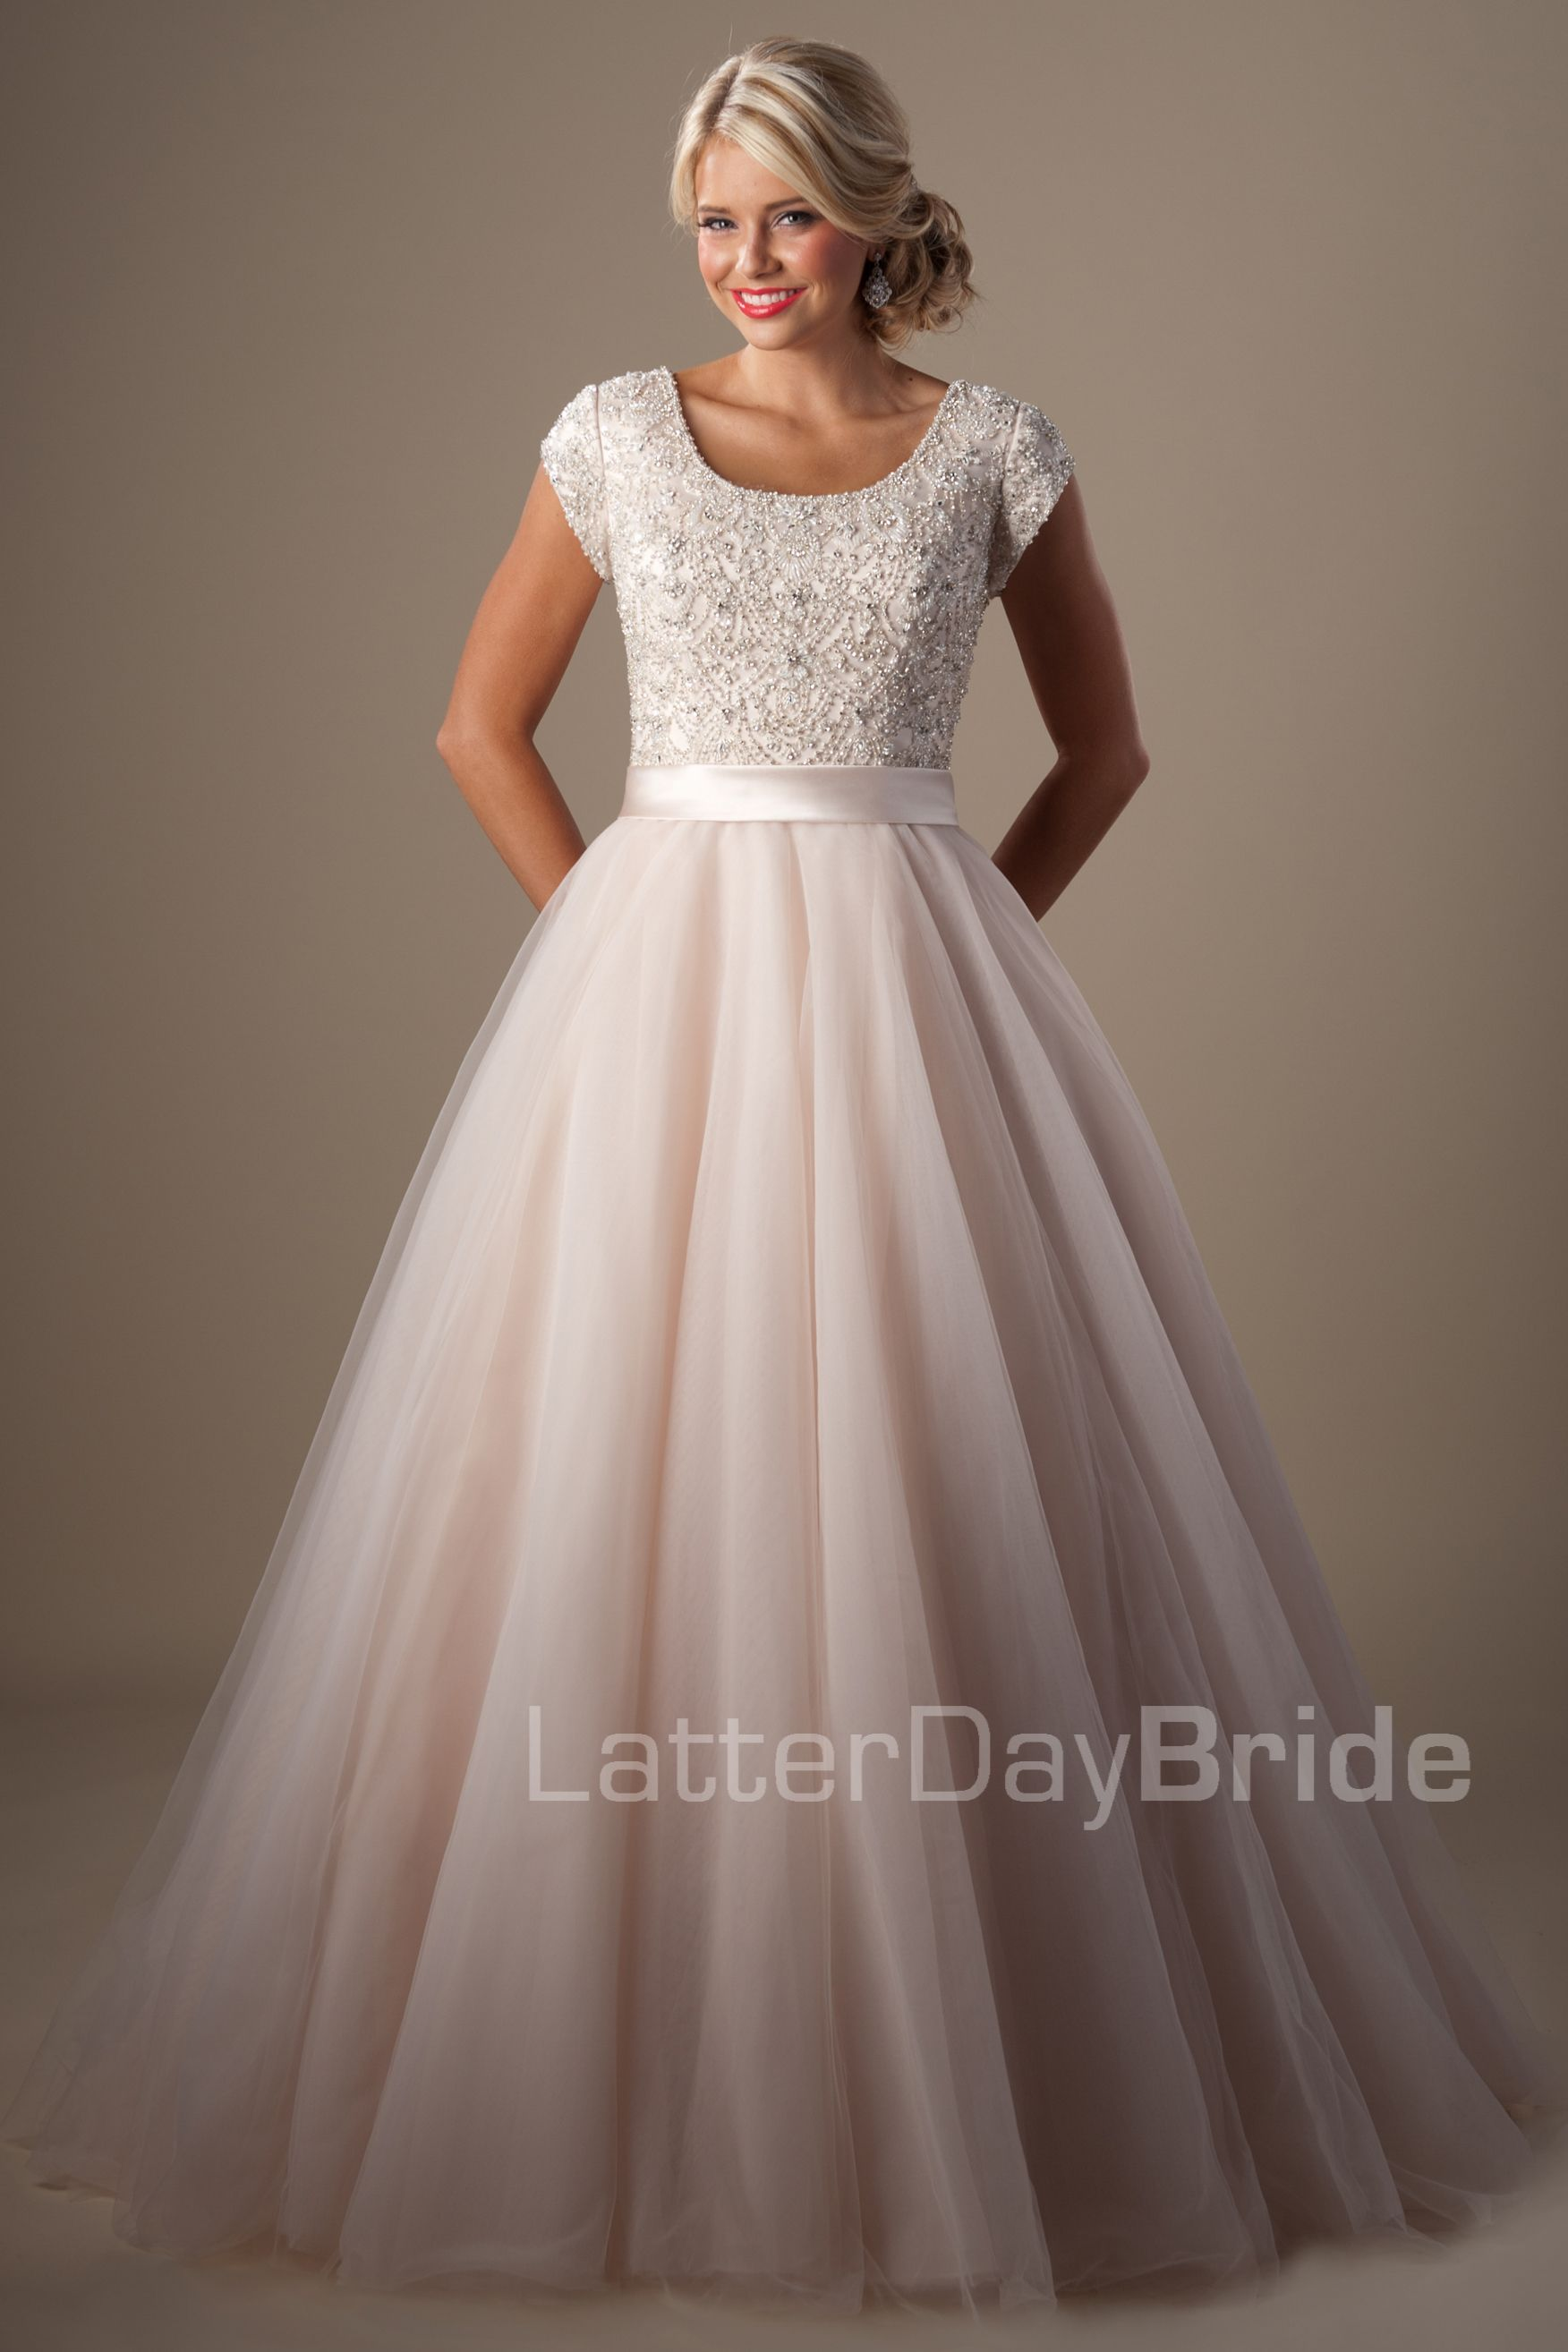 Modest Wedding Dresses : Arquette. Available at Latterday Bride. Go ...